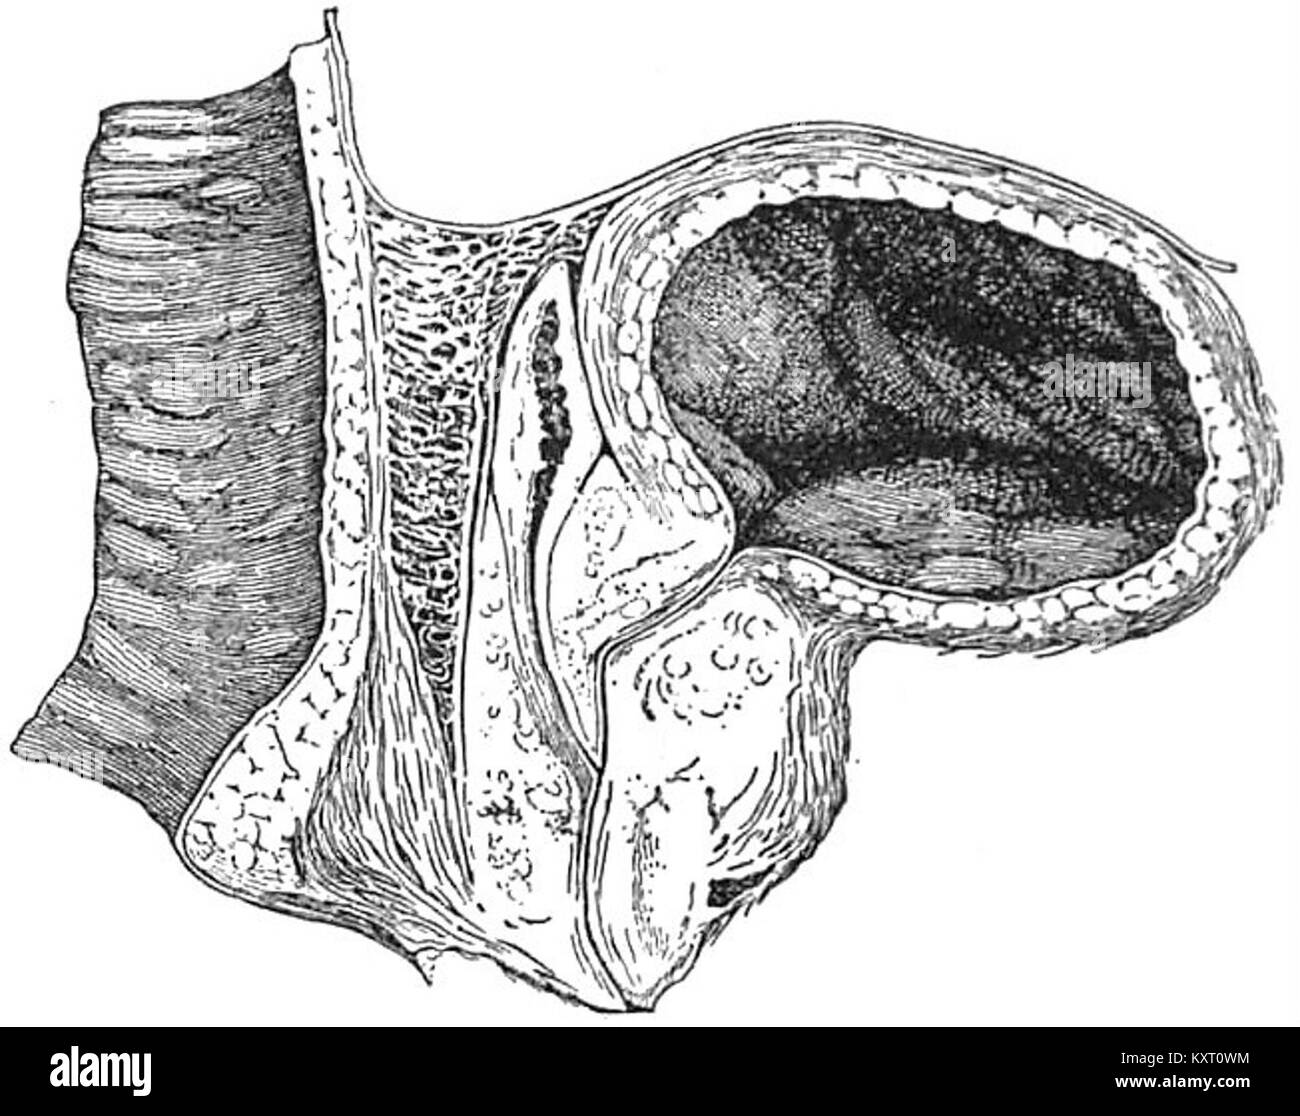 Prostate Black and White Stock Photos & Images - Alamy